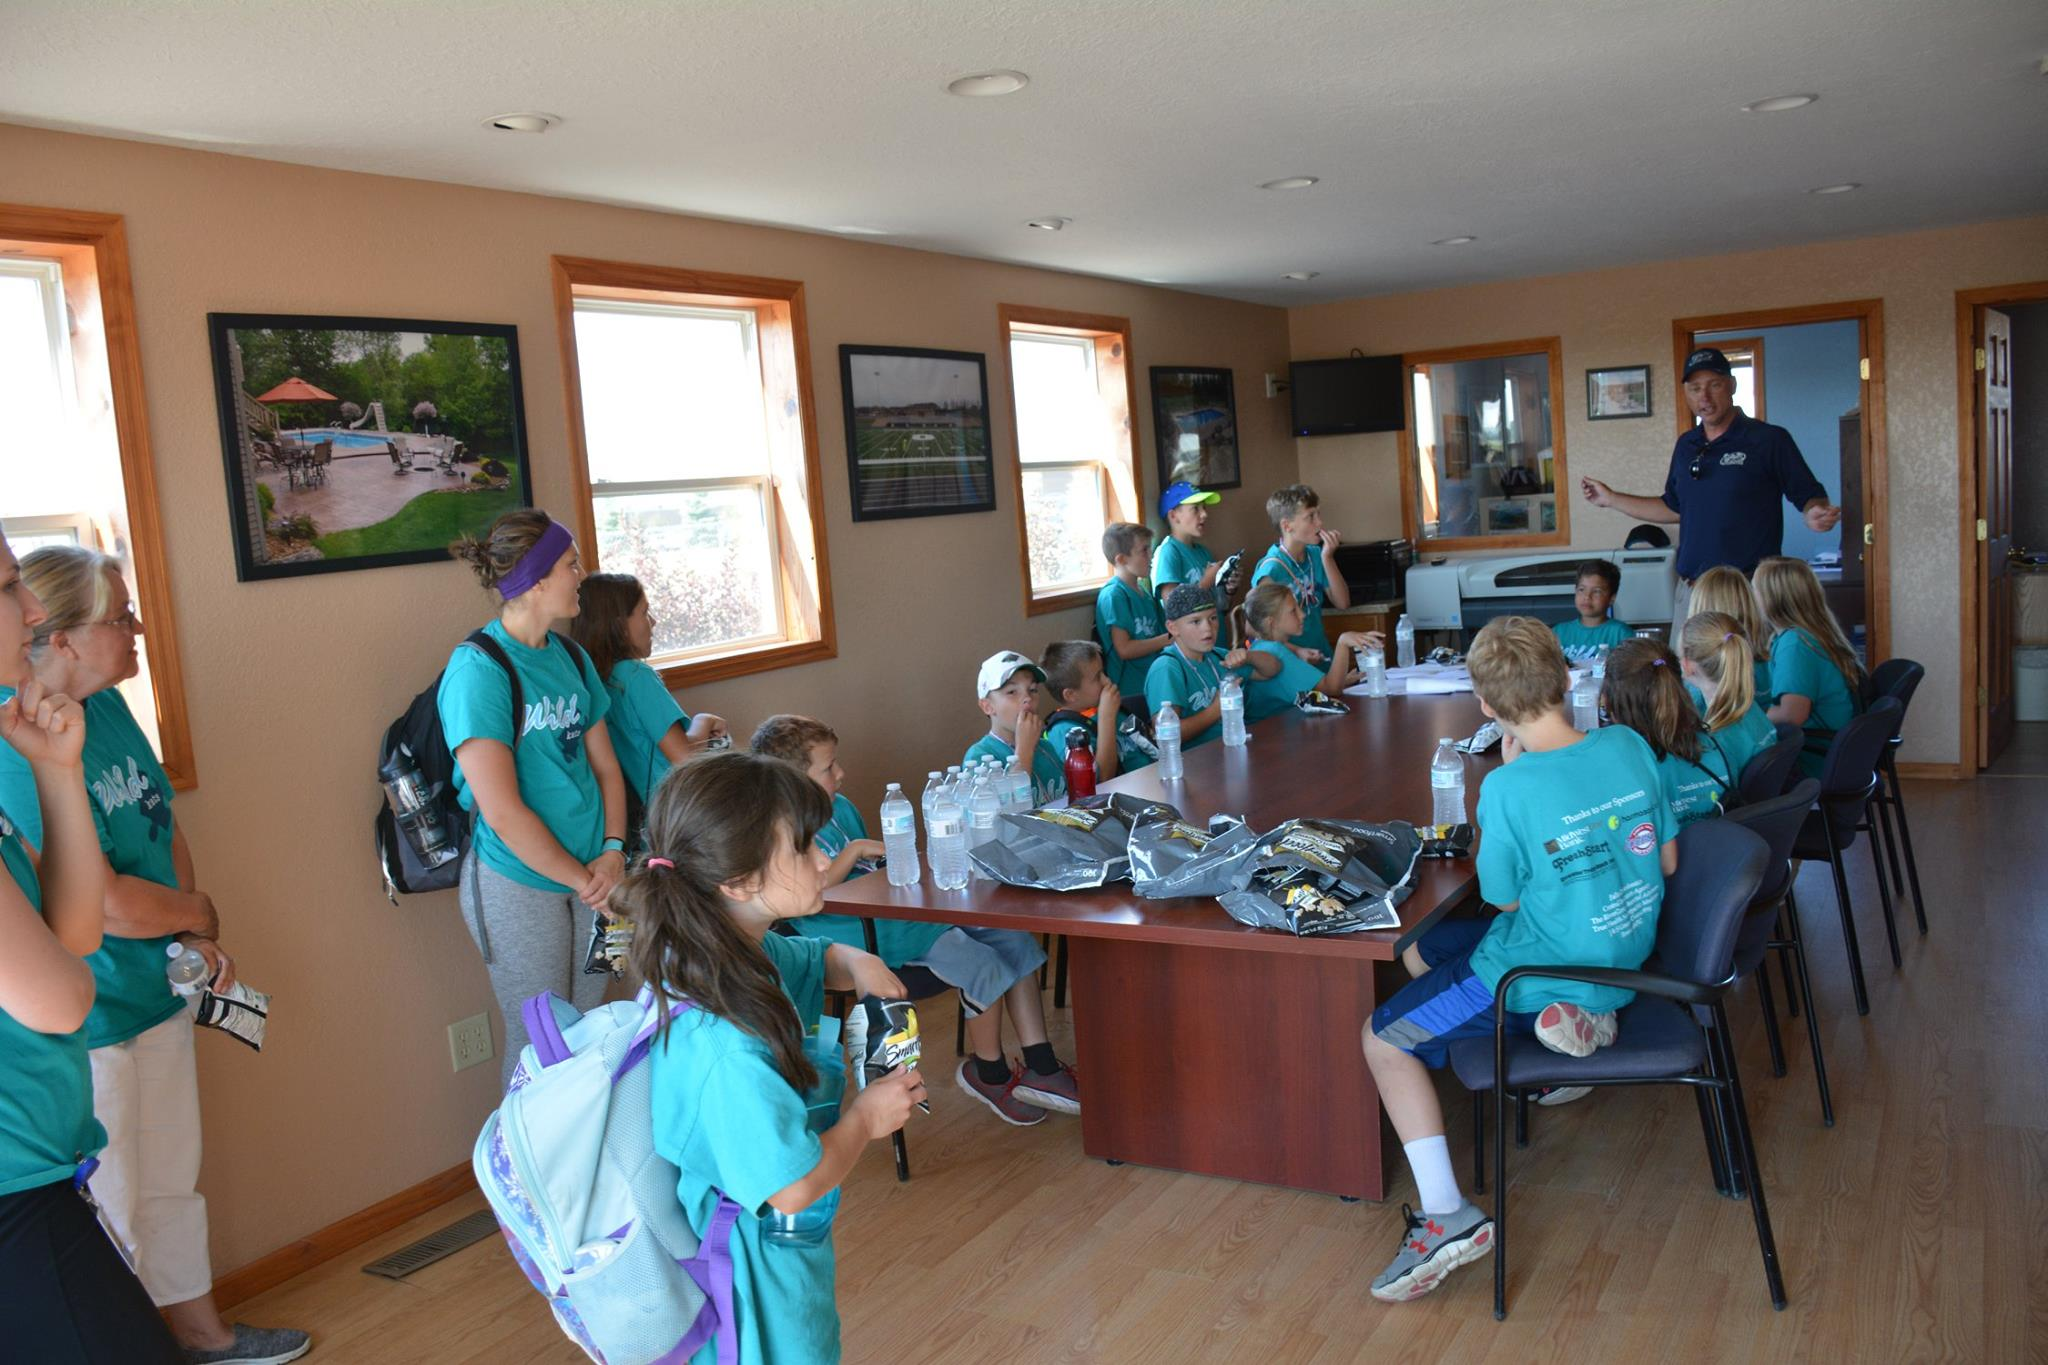 Steve Mueller talking to the kids when they first arrived for their tour at the J & S office.